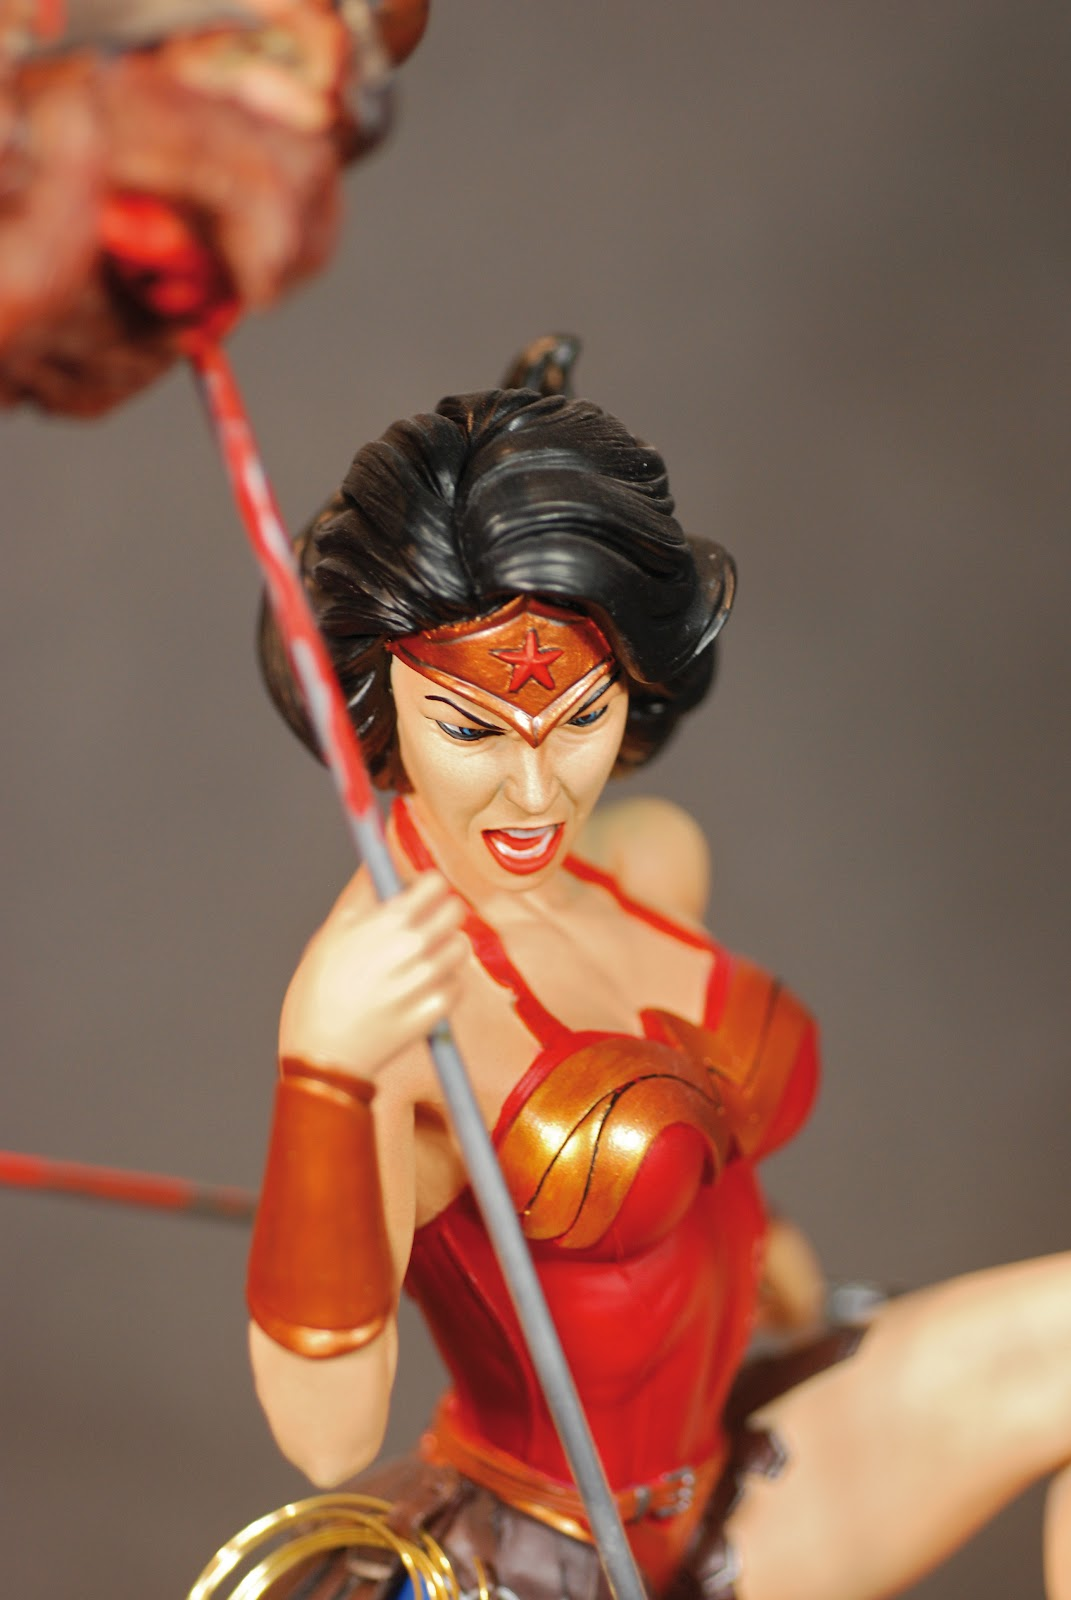 Spada Wonder Woman Contact Prod Production Blog Wonder Woman Bad Day In Hell